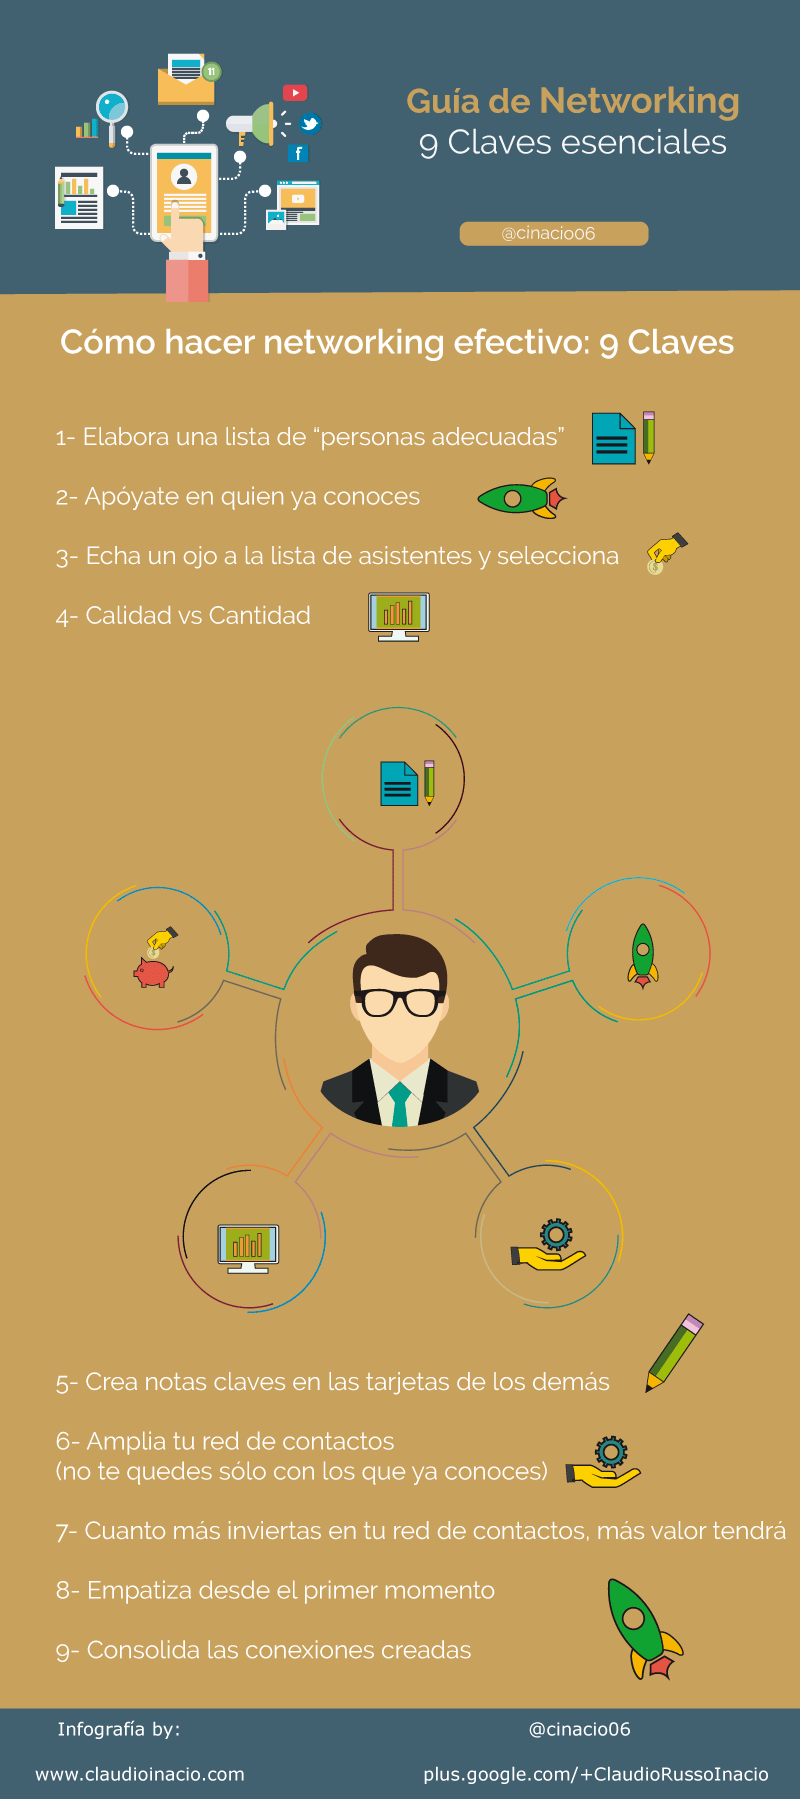 9 claves esenciales para el Networking #infografia #infographic #marketing - TICs y Formación